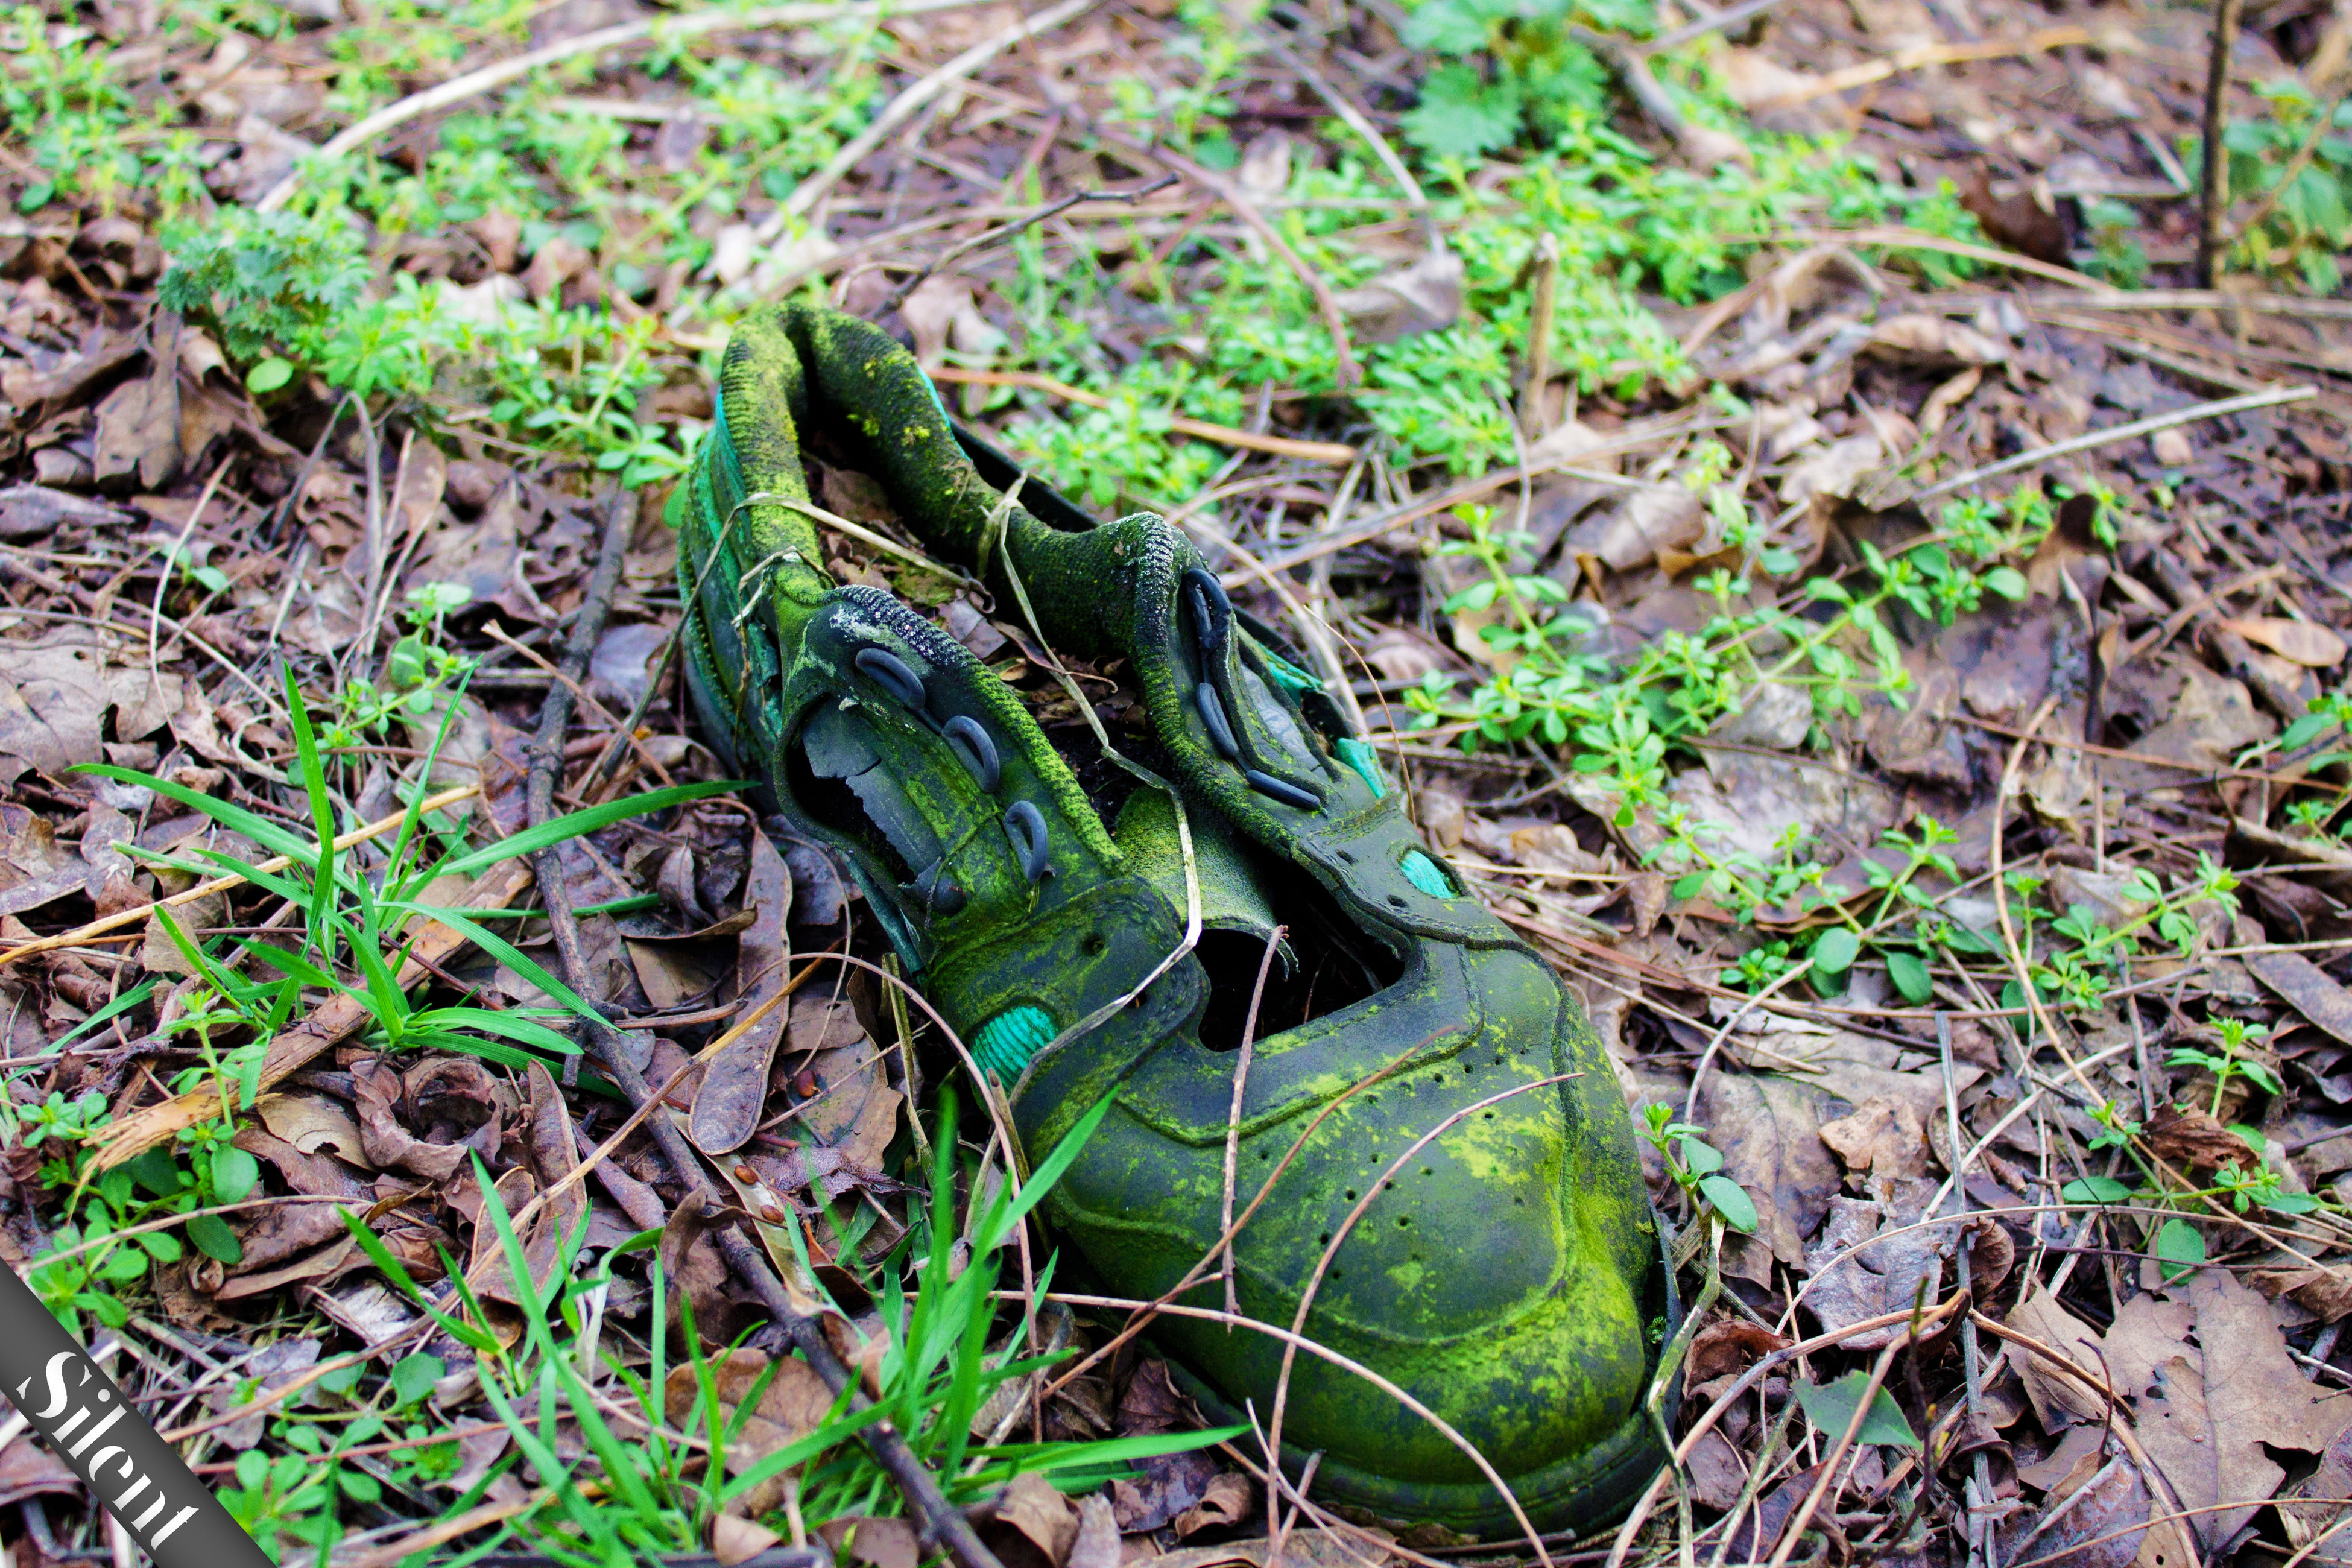 grass, high angle view, field, leaf, plant, abandoned, dry, dirt, nature, close-up, ground, day, outdoors, damaged, grassy, green color, messy, growth, no people, obsolete